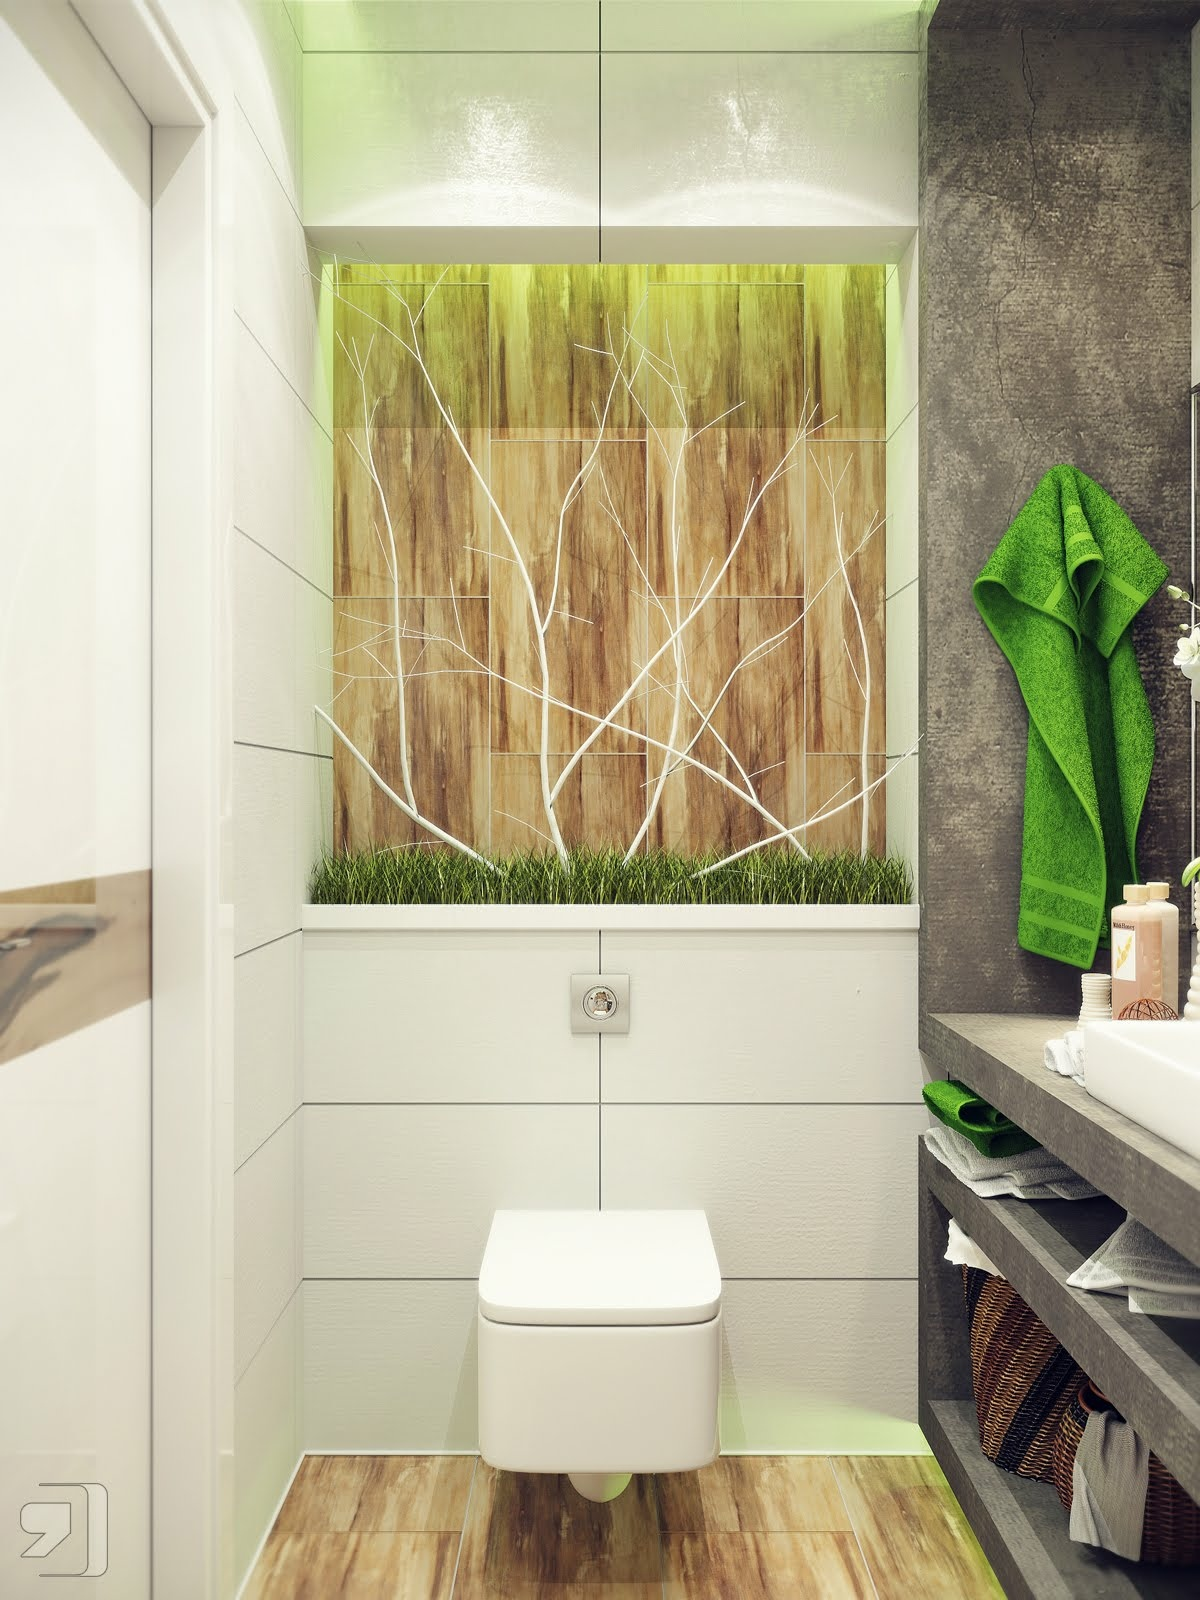 Http Www Home Designing Com 2012 08 Small Bathroom Design Green White Nature Inspired Bathroom